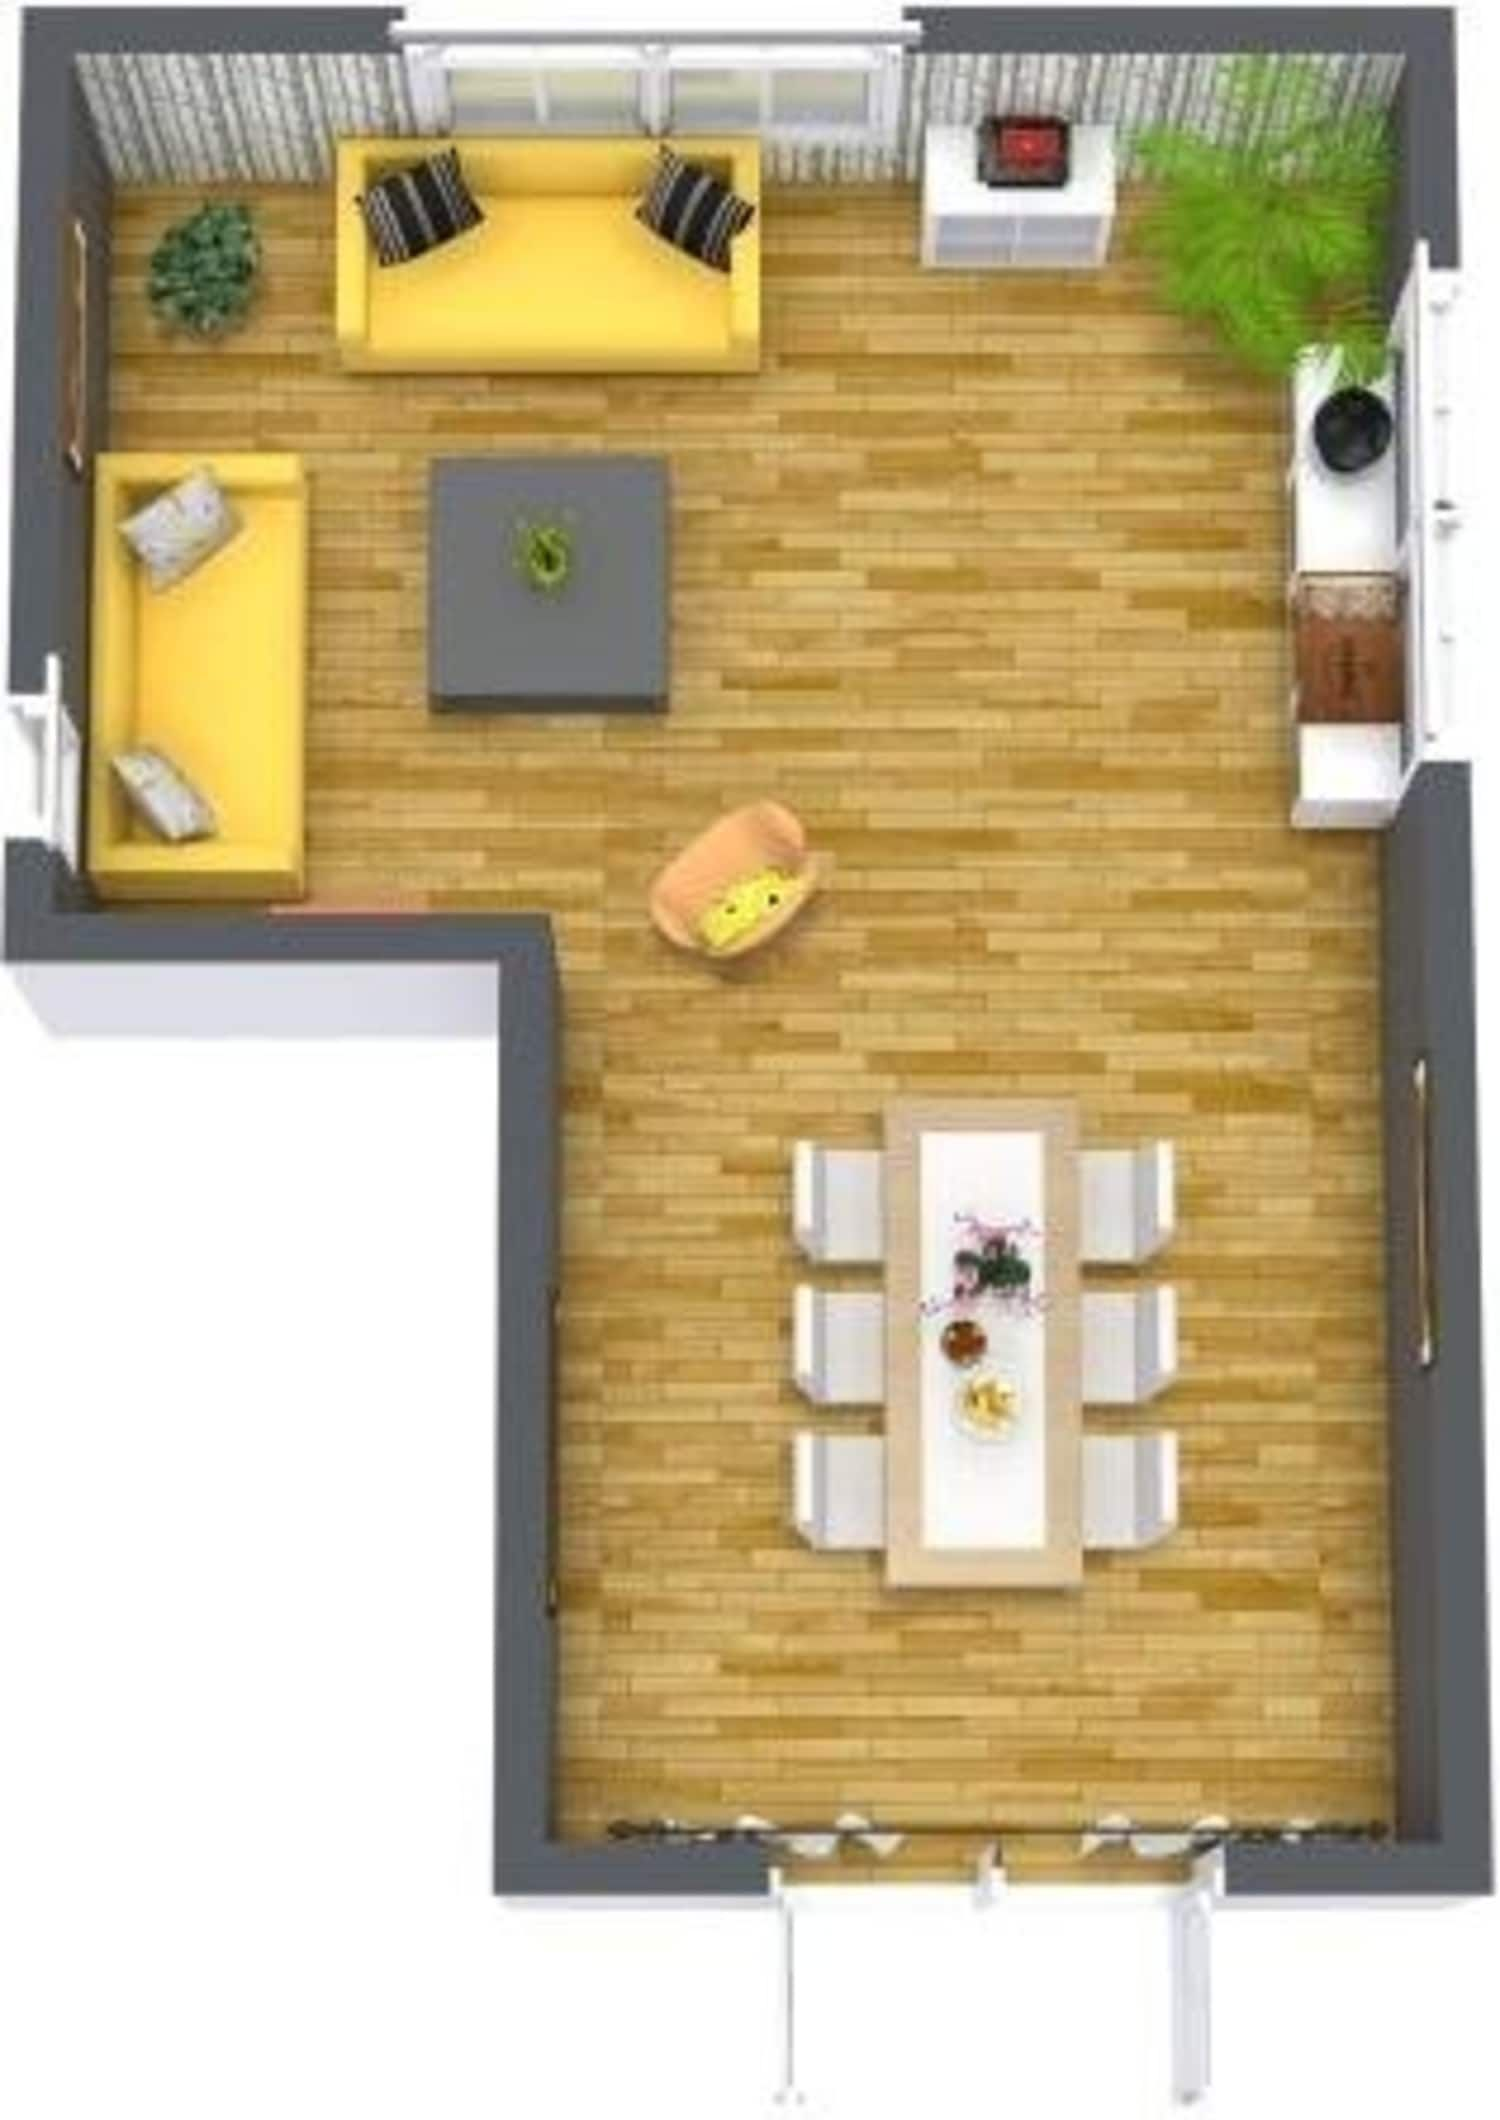 How To Optimize Typical Rental Layouts The L Shaped Living Di